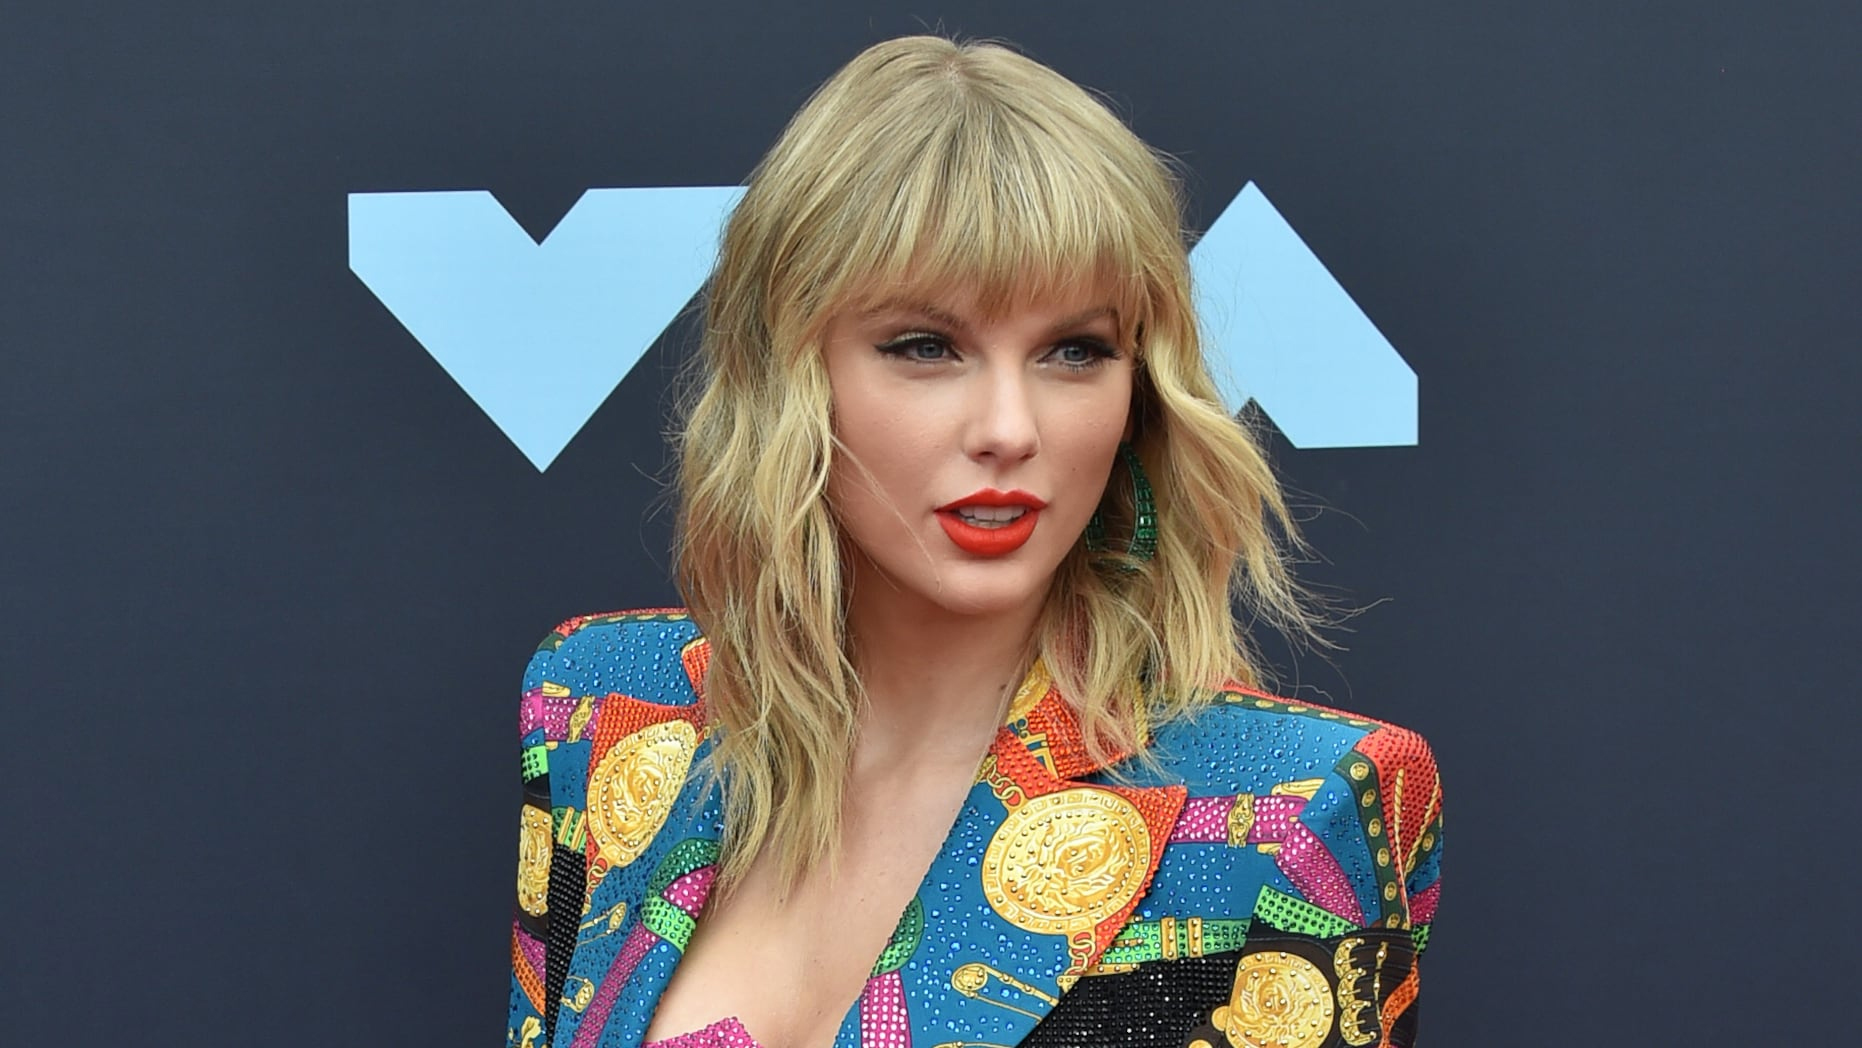 Man busted trying to get into Taylor Swift's NYC apartment